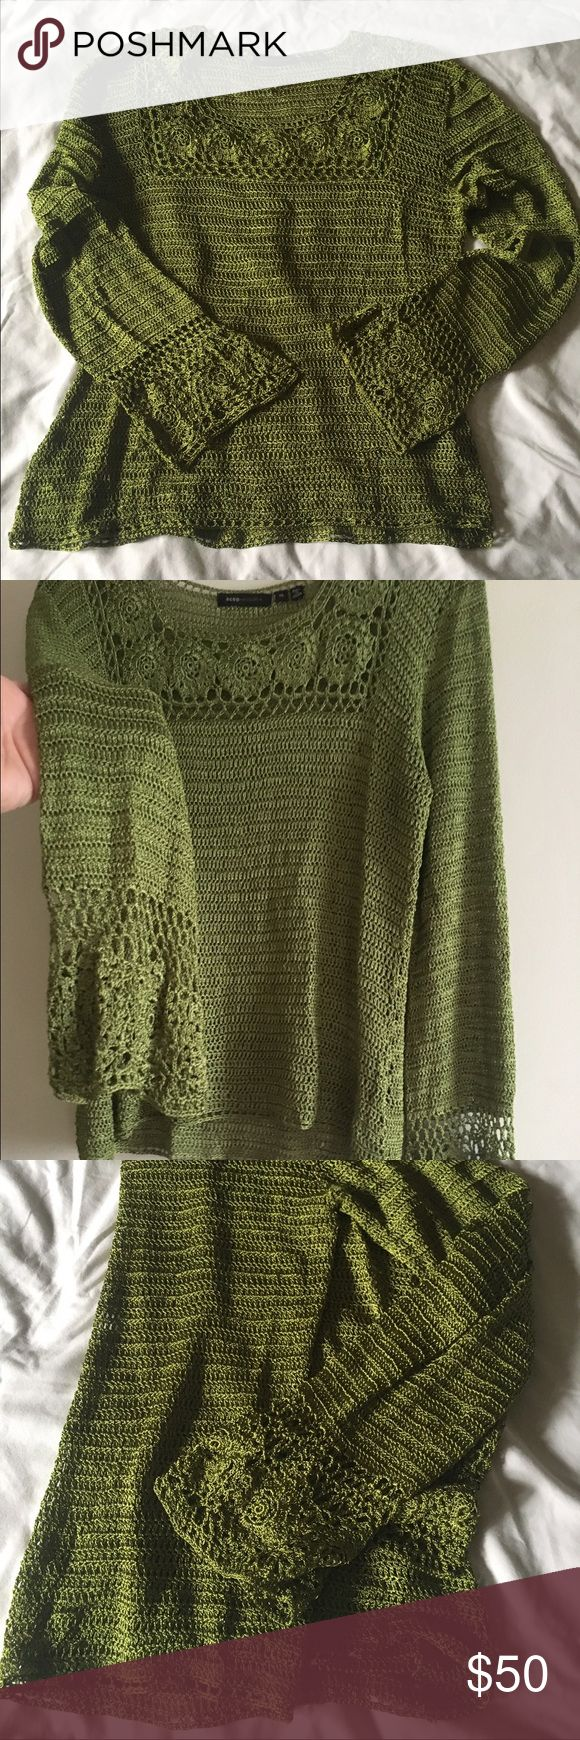 BCBG NWOT Knit Top🍀💚🐢👒 This NWOT heavy knit BCBG size XL is beautiful! It feels silly on the skin with a hint of weight that gently presses against your body making every movement sexier than the last. I must tell you that though it is marked XL, it fits like a true Medium. It has never been worn and it shouldn't sit around unused. I only fold it to store it--Never on a hanger as a hanger is no good for this knit. Thank you so much for shopping my closet! Happy Poshing! 💚🍀🌺🌼👒…